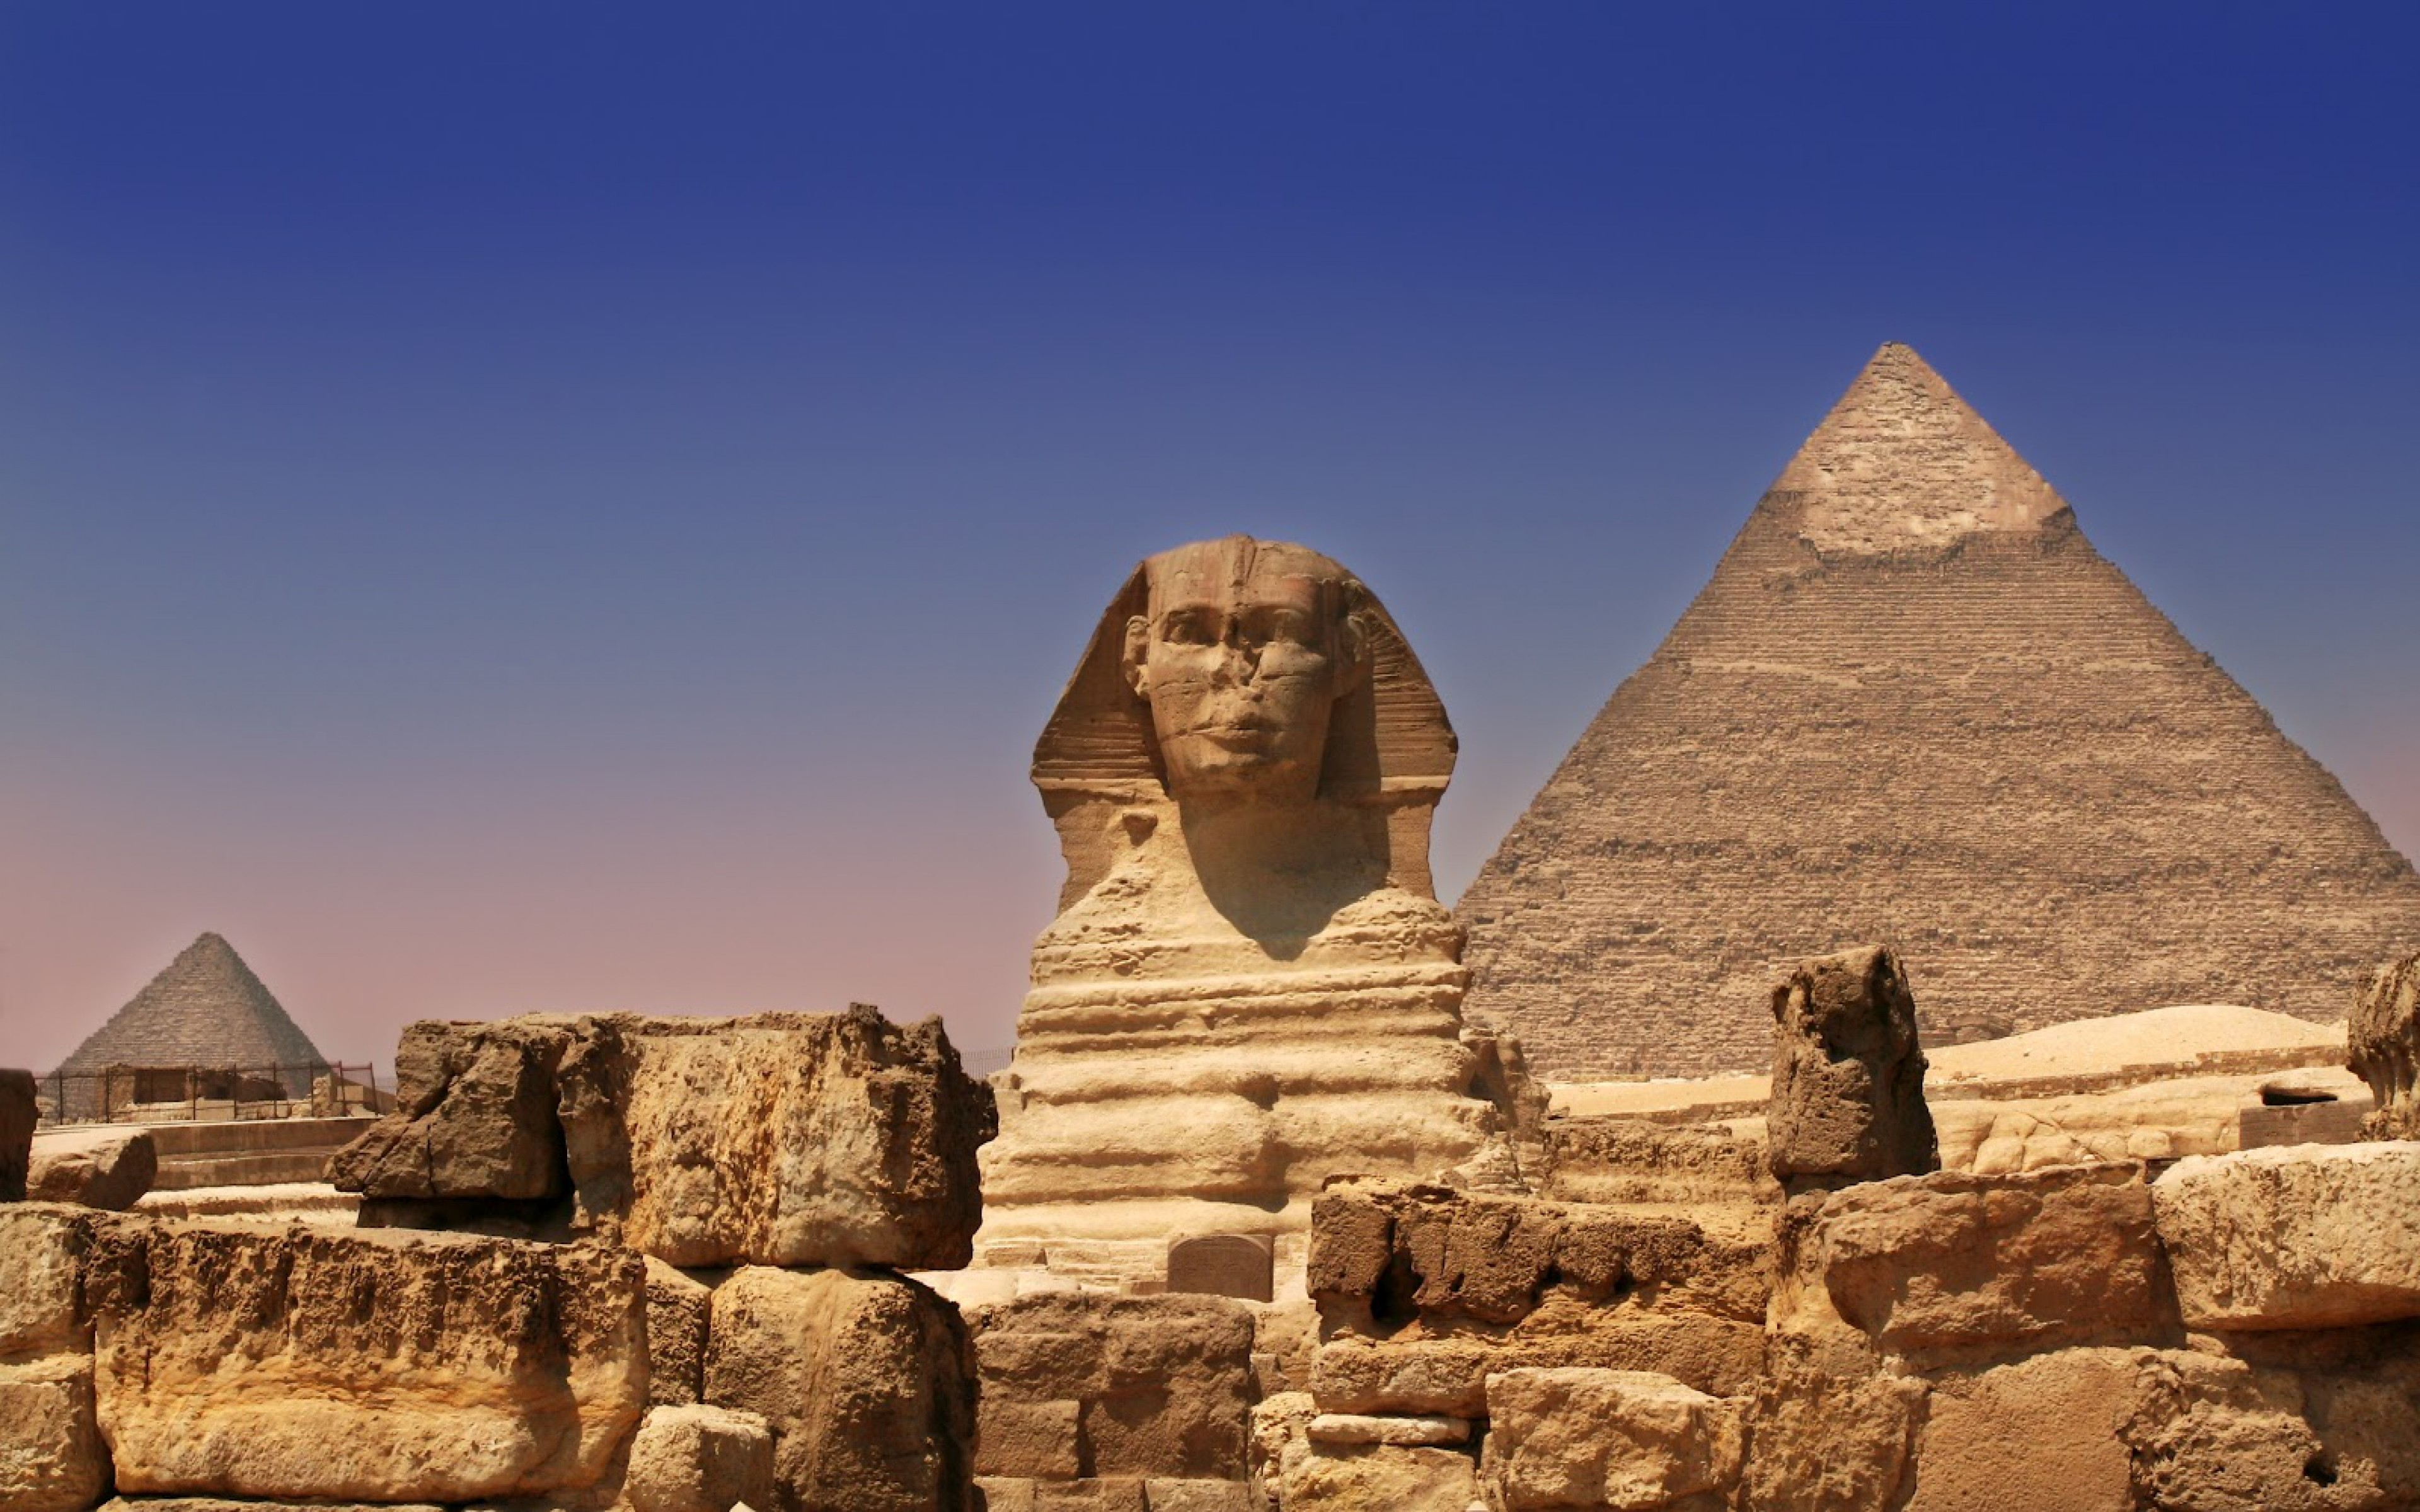 Giza Pyramids,Cairo - Sharm El Sheikh Egypt Travel Packages